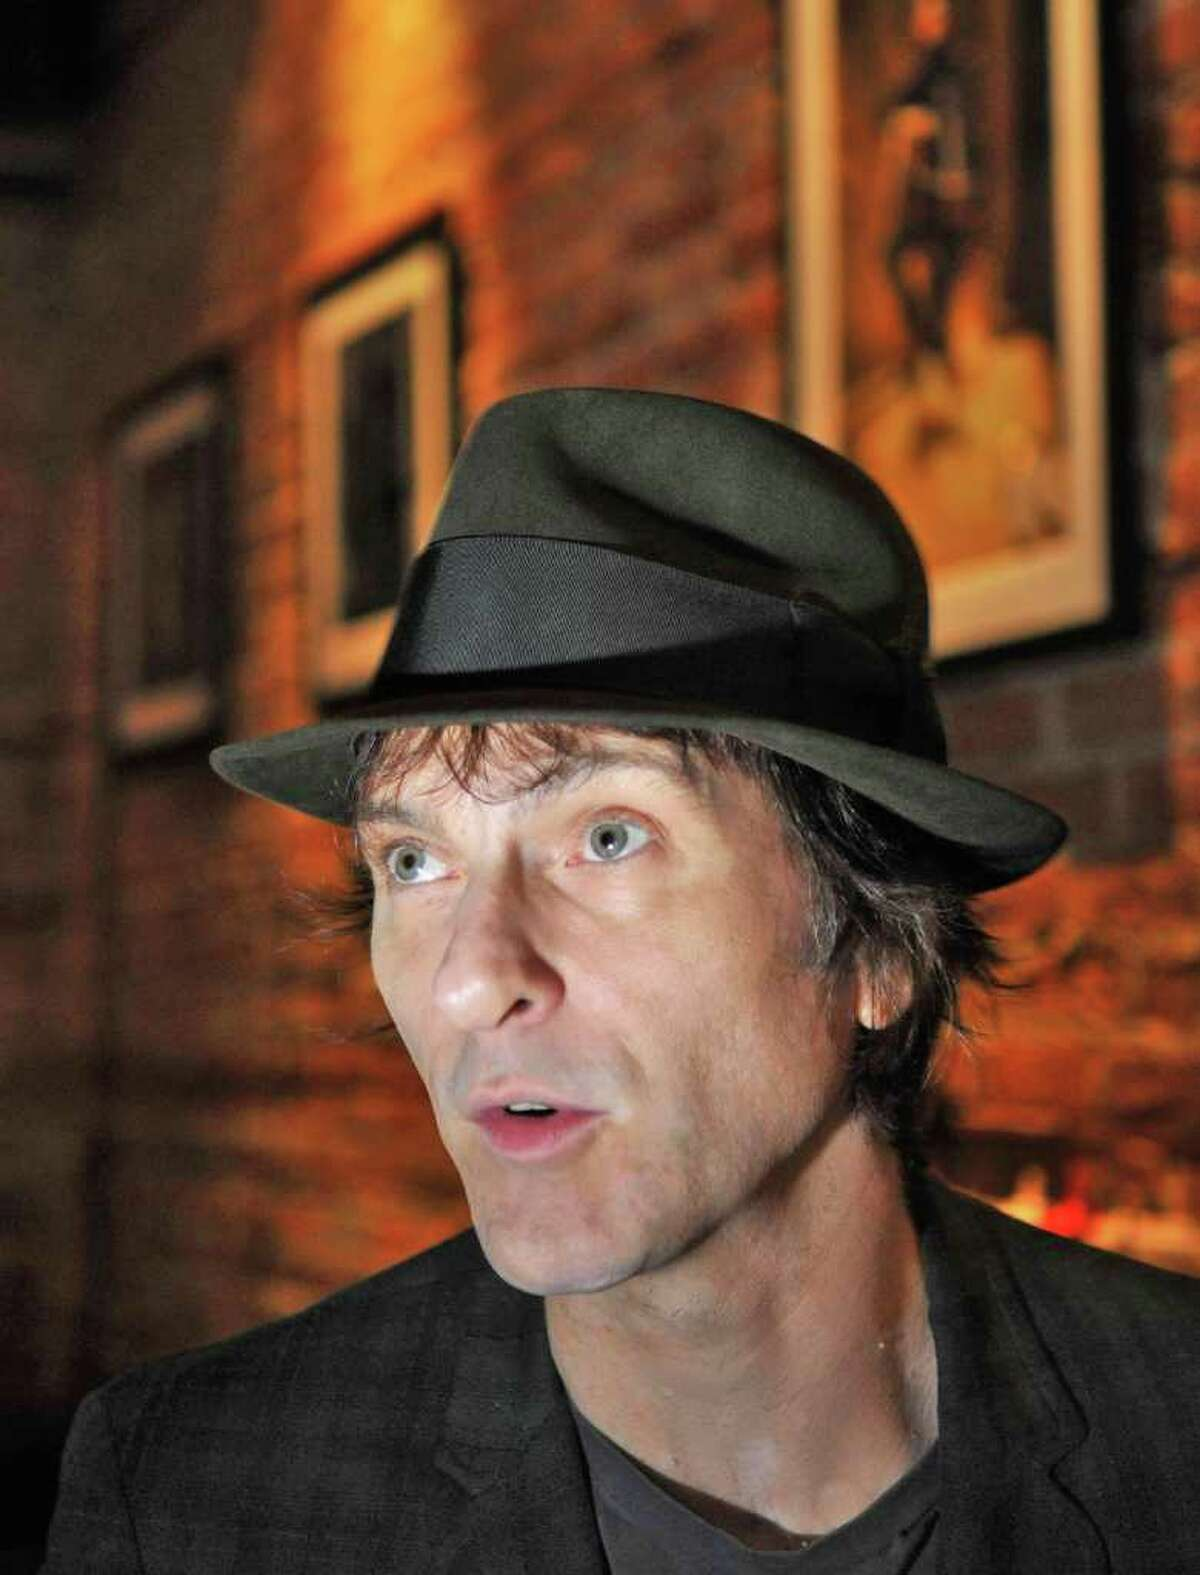 Tommy Stinson, a new resident of Hudson and former bassist in The Replacements, sits inside a Warren Street restaurant in Hudson in late September shortly before hitting the road on his latest assignment. Stinson is now playing with Guns n Roses on its worldwide tour. (John Carl D'Annibale / Times Union)